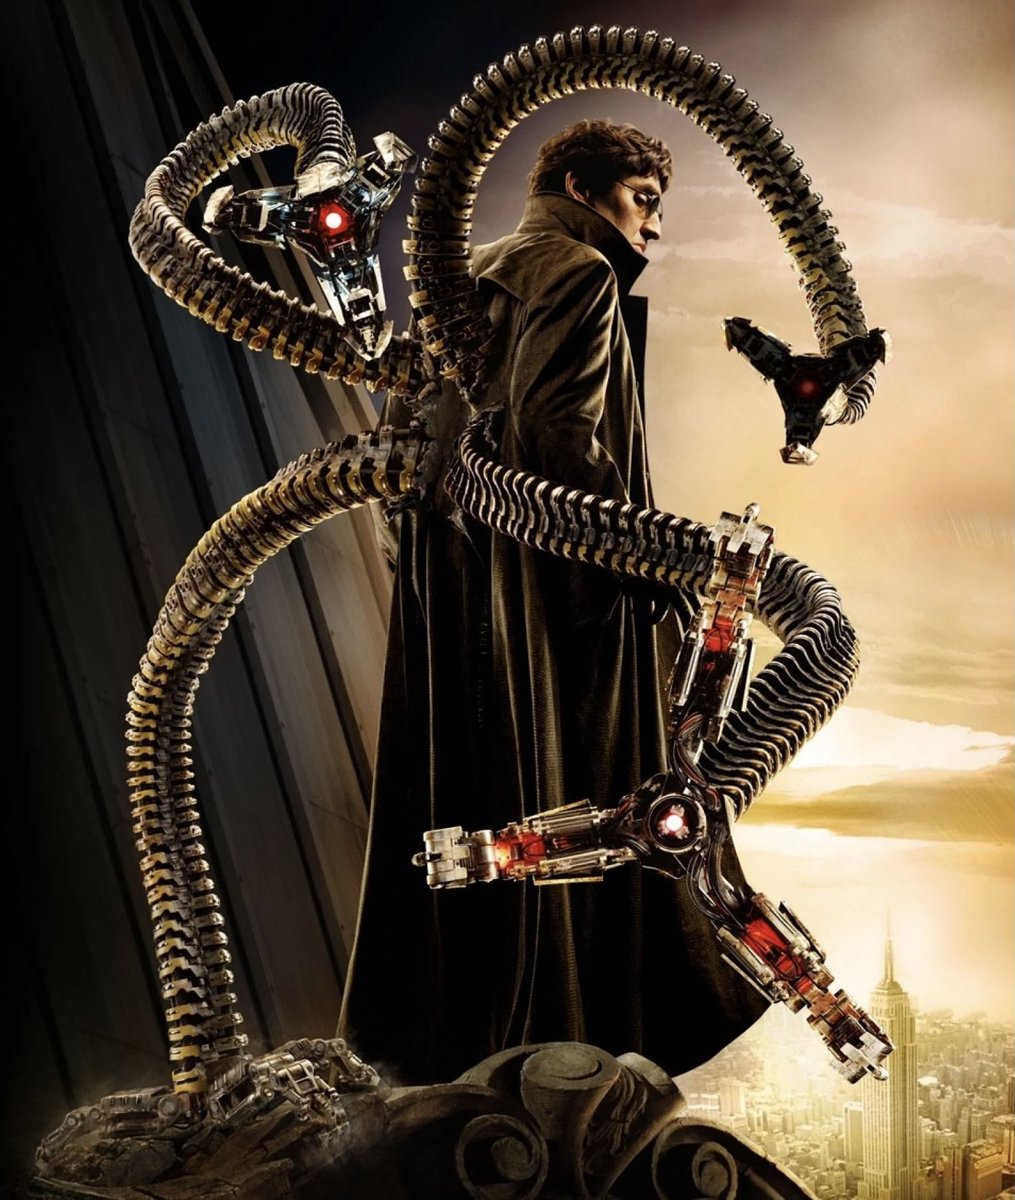 IT'S OFFICIAL, FOLKS. Alfred Molina is officially returning as Doctor Octopus in Marvel Studios' #SpiderMan3 (2021)!   This will be his first appearance since 'Spider-Man 2' in 2004, & he will be joining Jamie Foxx's Electro. The Spider-Verse IS happening! ...via @THR.